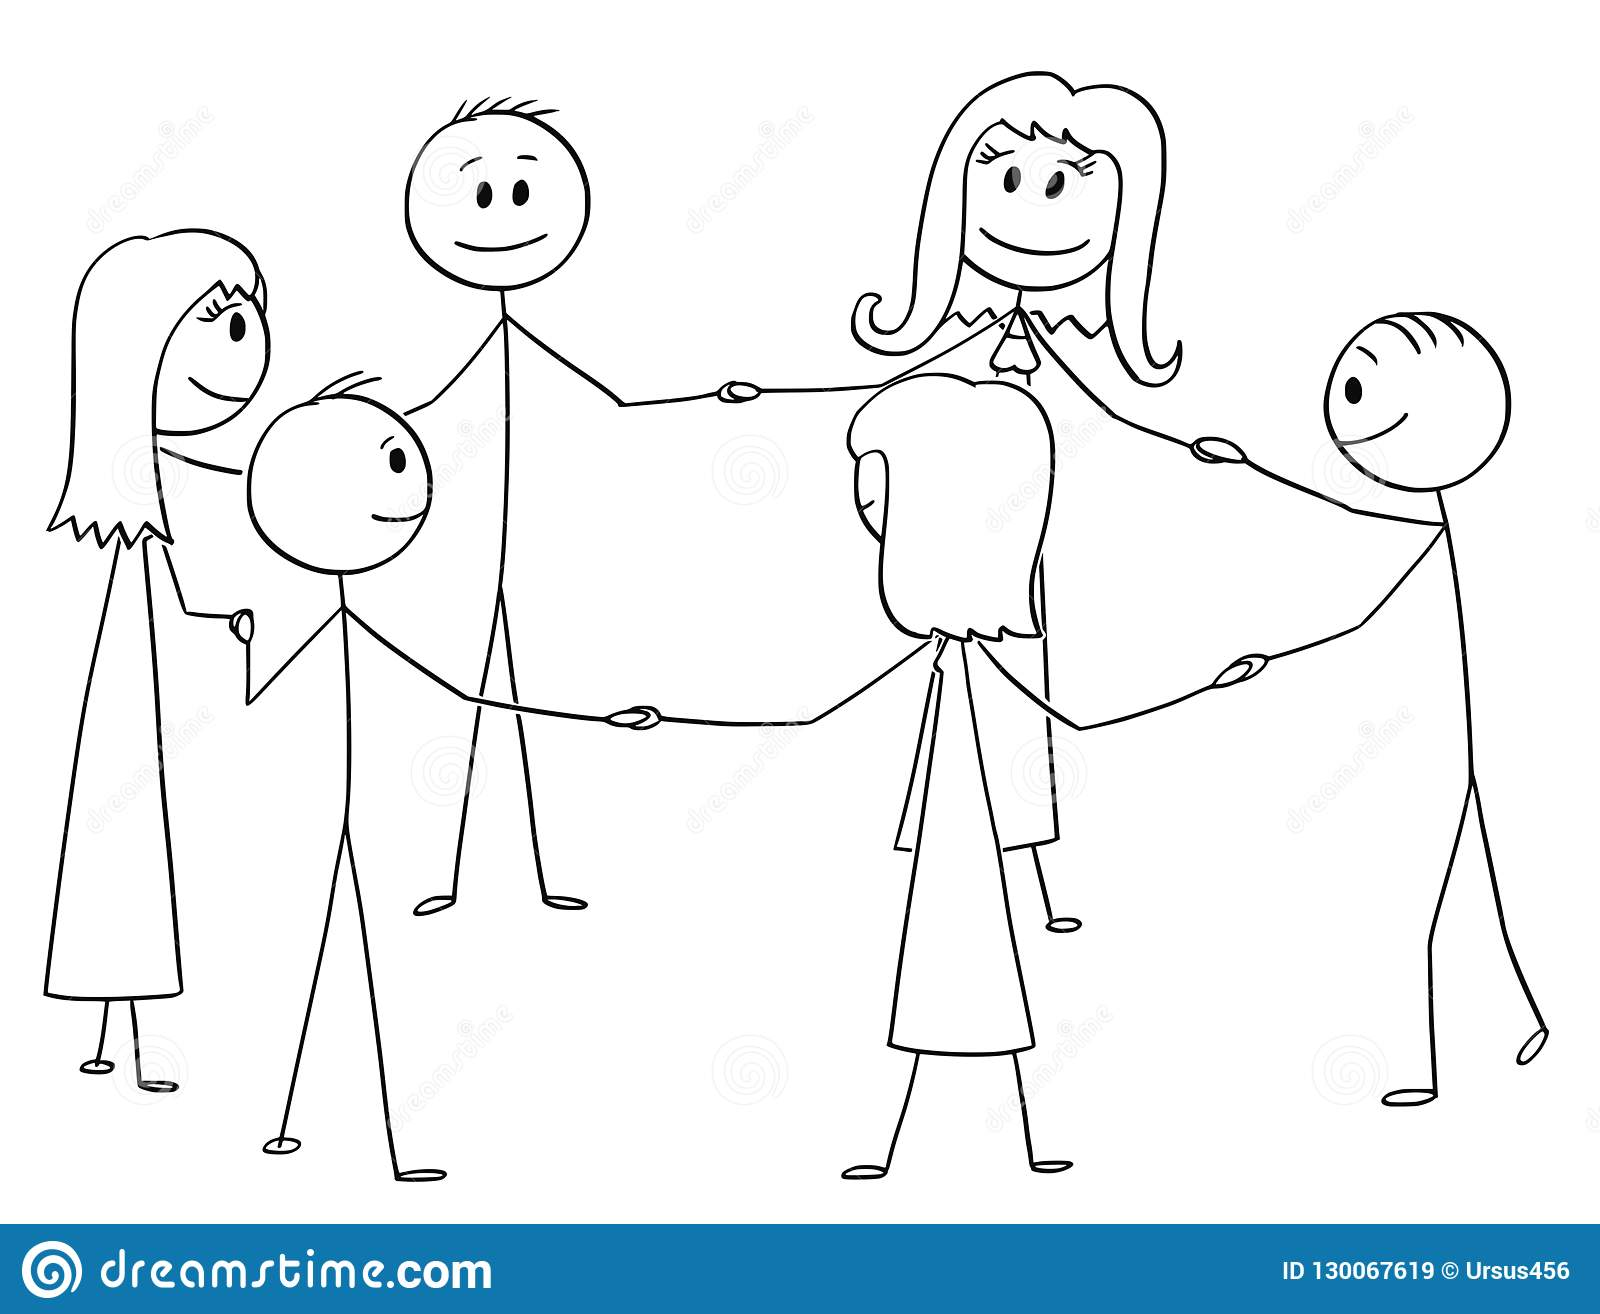 Cartoon stick drawing conceptual illustration of group of six people holding each other hand and standing together in circle